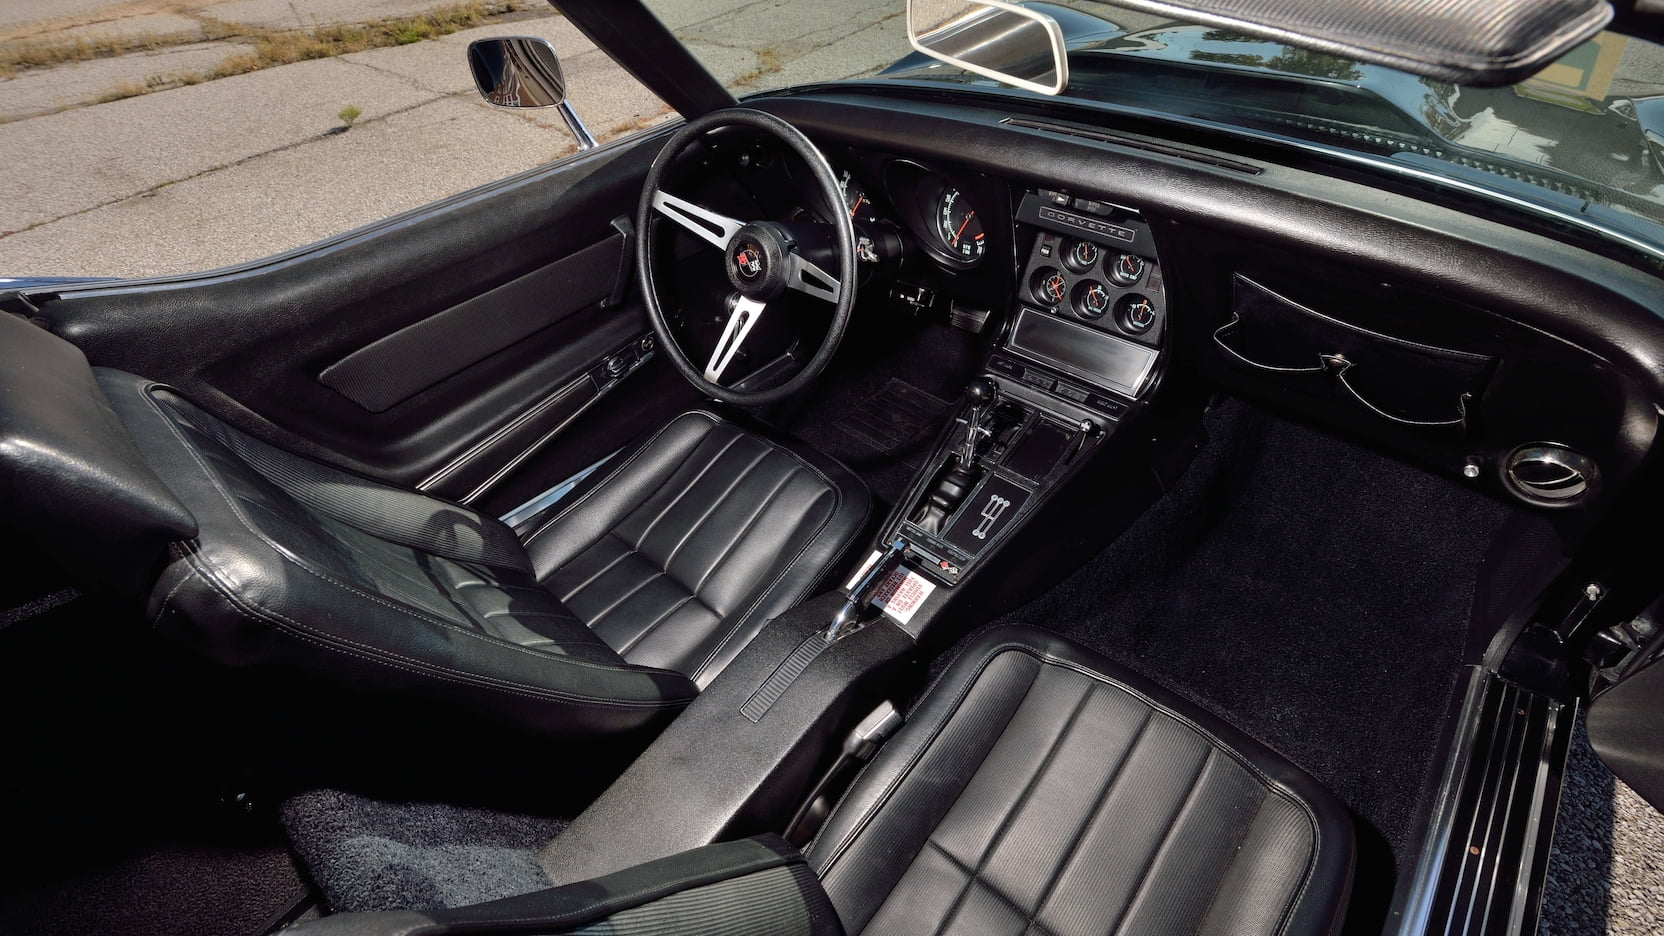 1969 Chevrolet Corvette l88 interior convertible